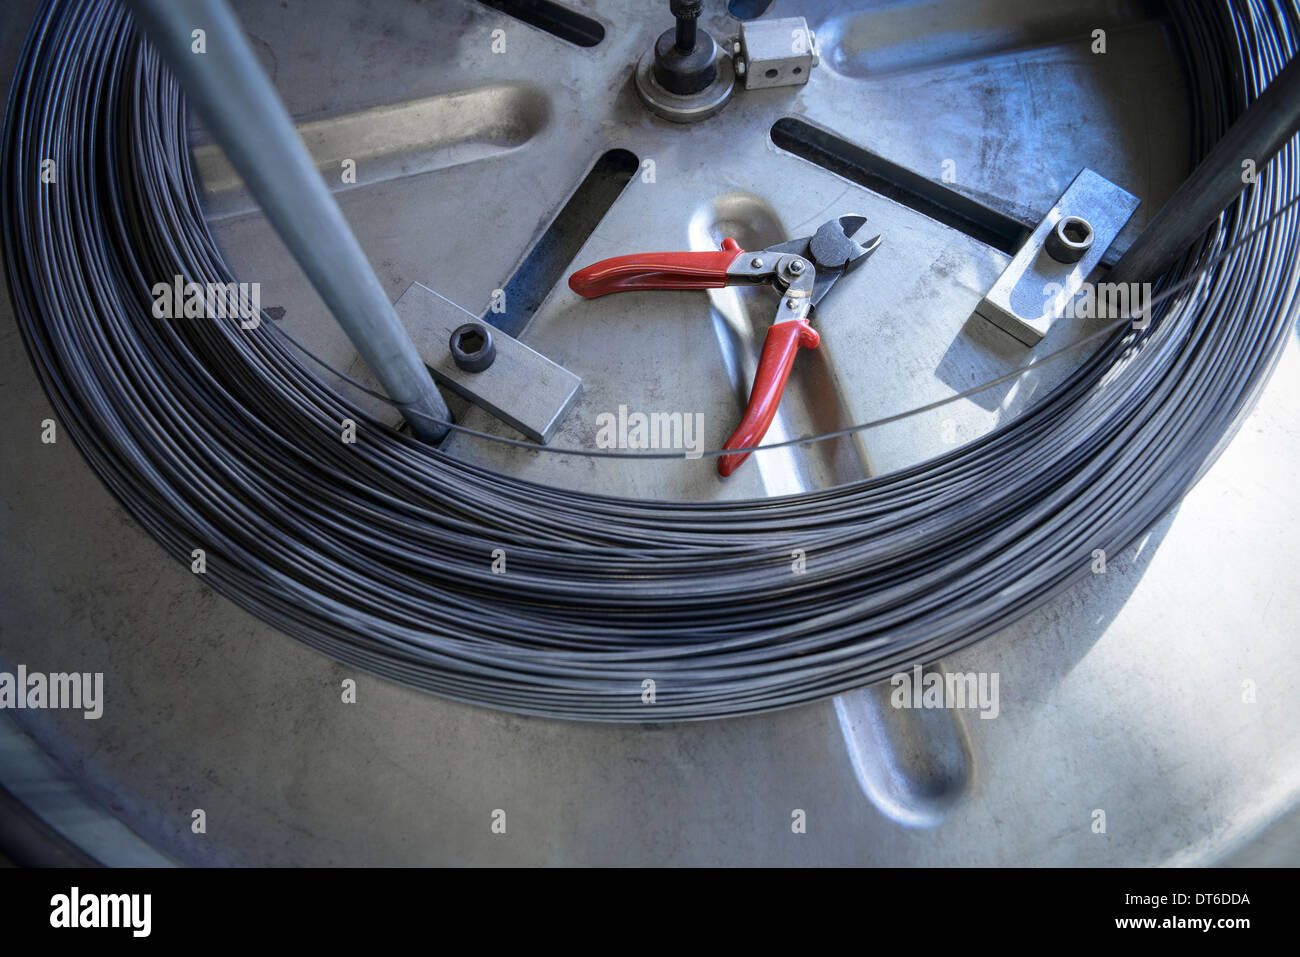 Coil of wire and wire cutters in factory - Stock Image